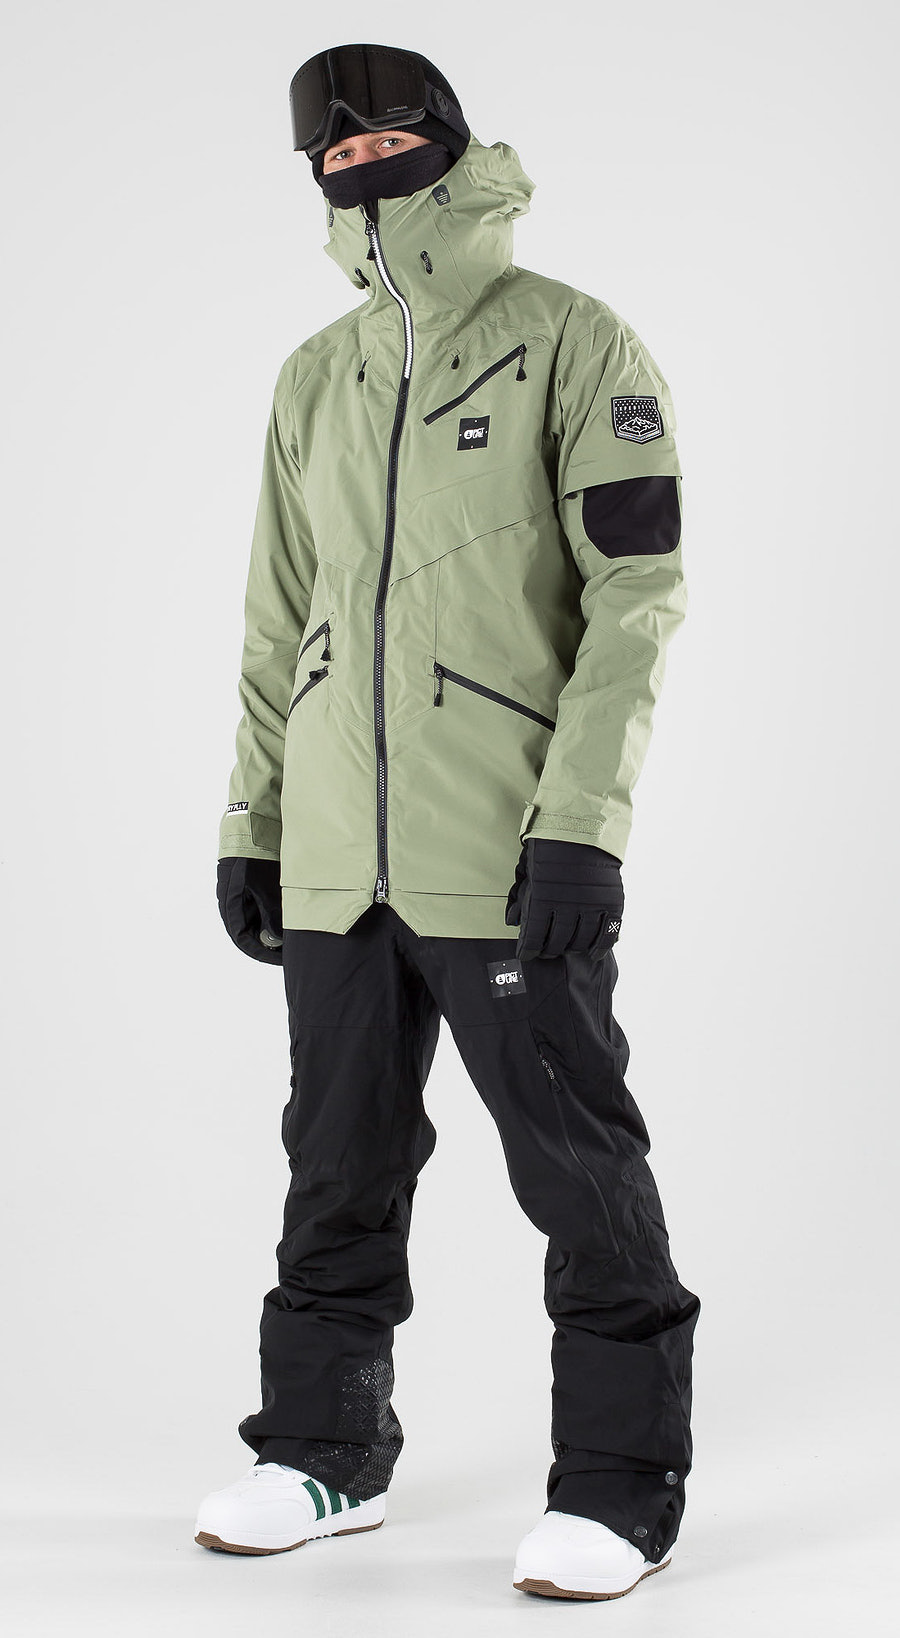 Picture Zephir Army Green Snowboardkleidung Multi